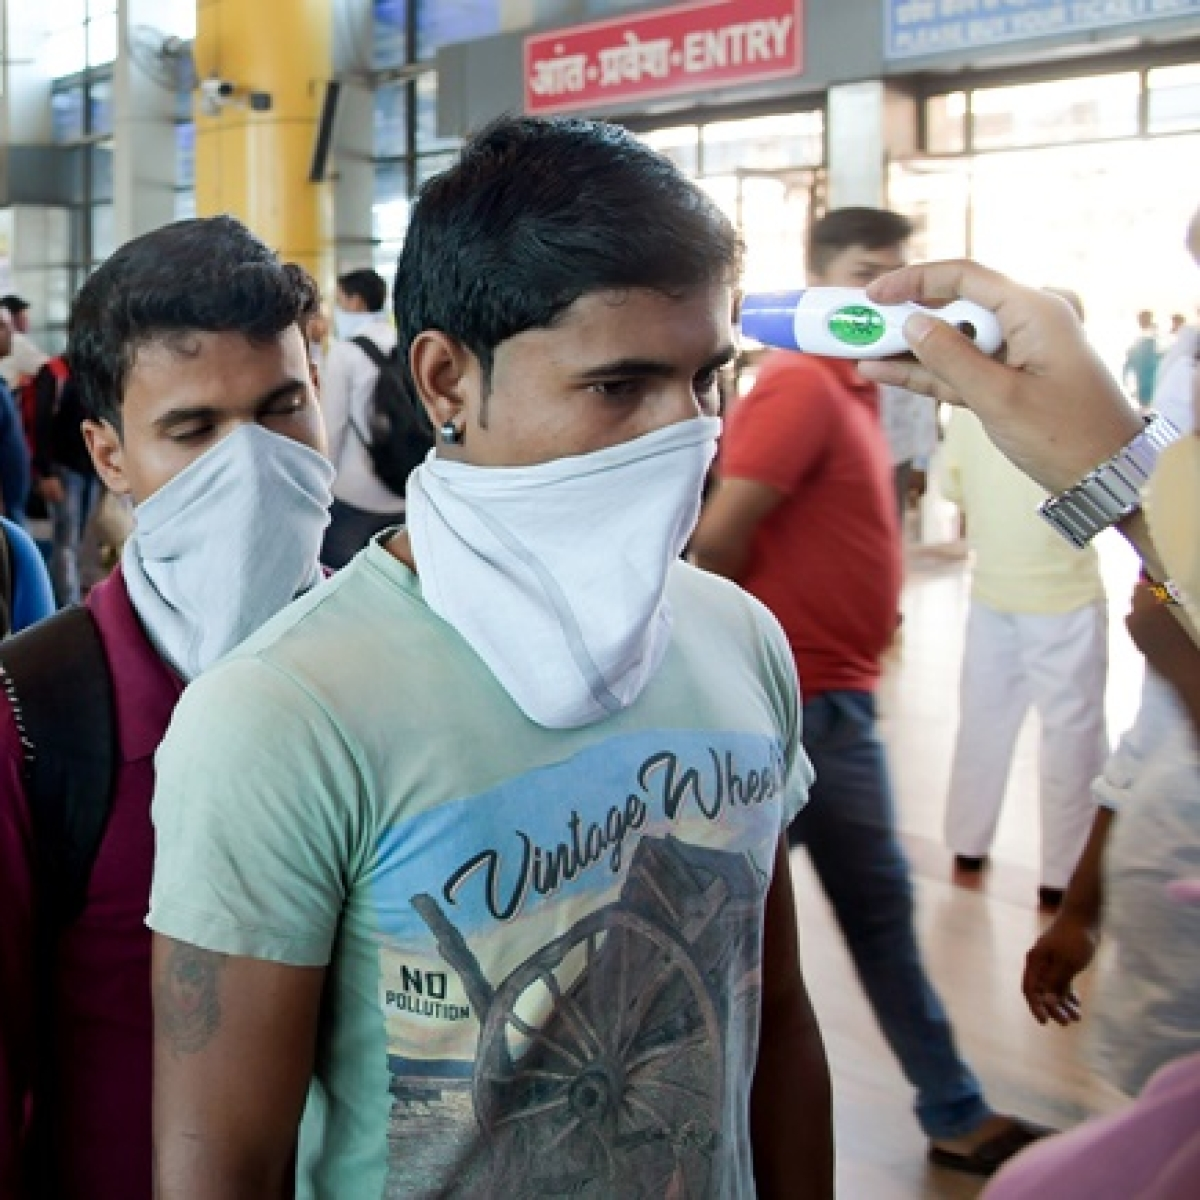 Coronavirus updates from India and the world: Death toll rises to 29 in India, number of cases climbs to 1,071